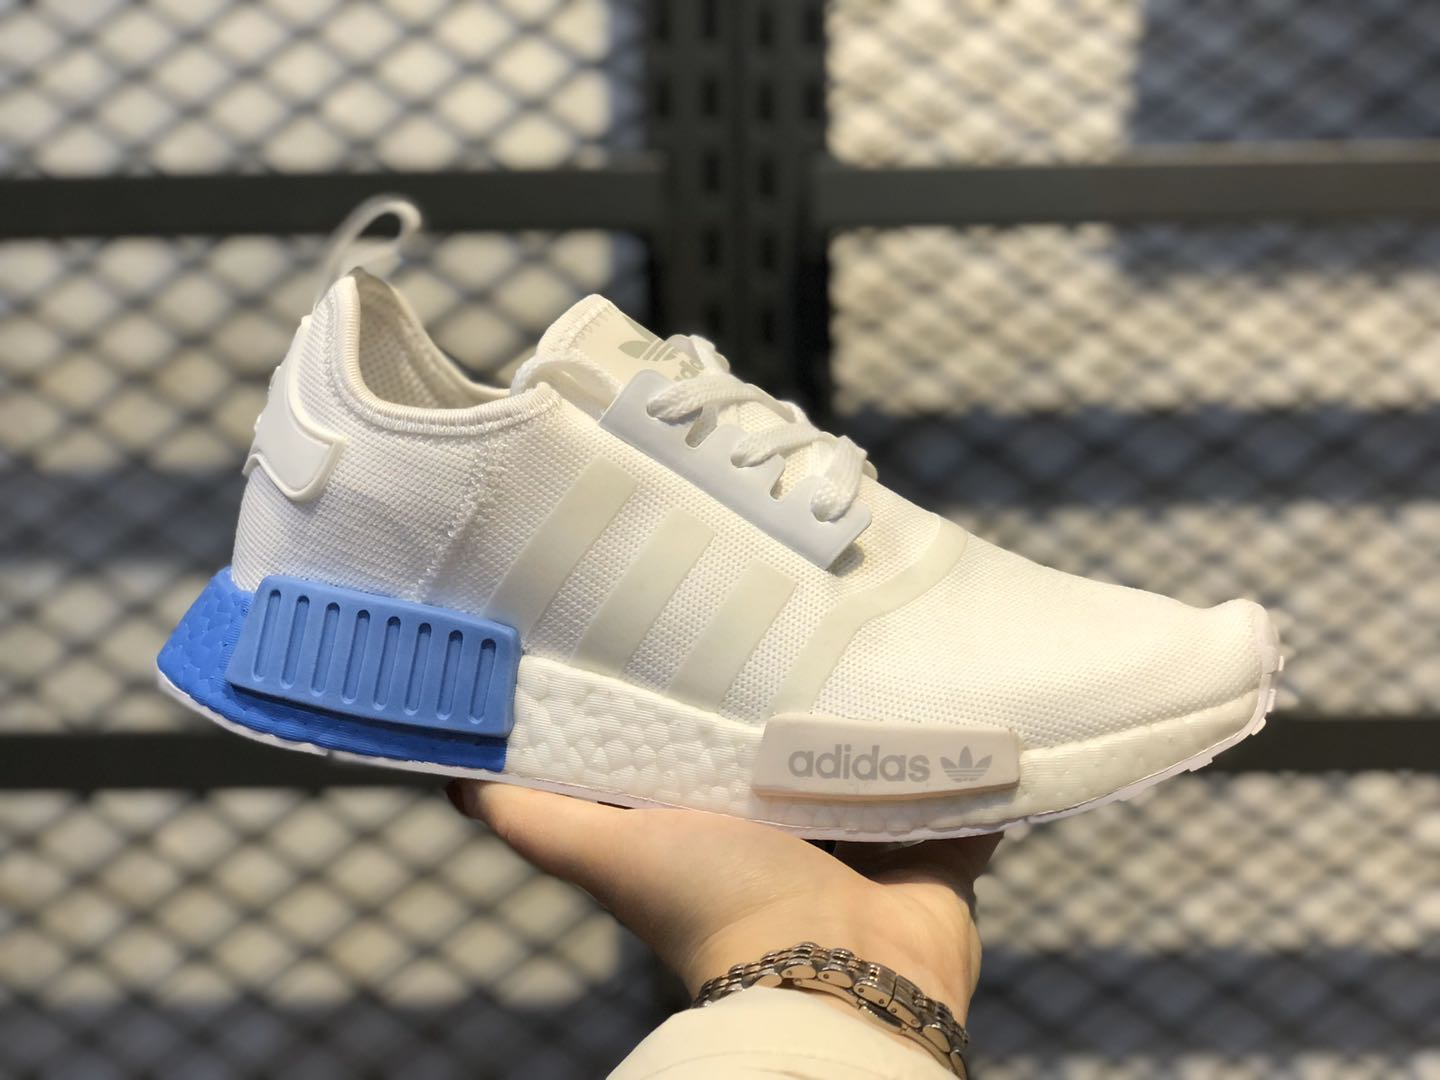 Adidas NMD R1 Cloud White/Real Blue Running Shoes EE6677